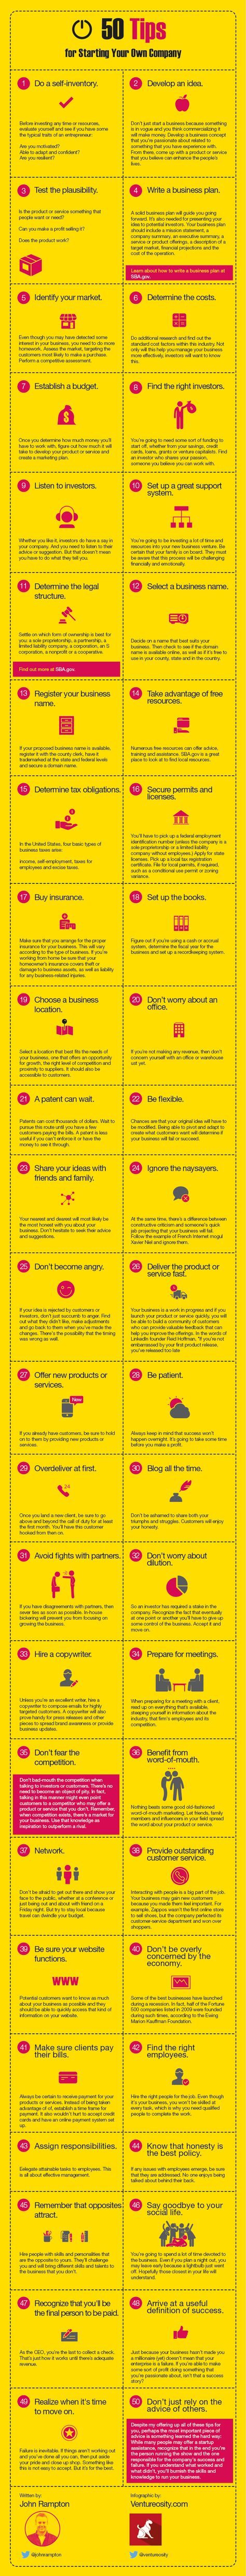 50 Tips For Starting Your Own Company #infographic